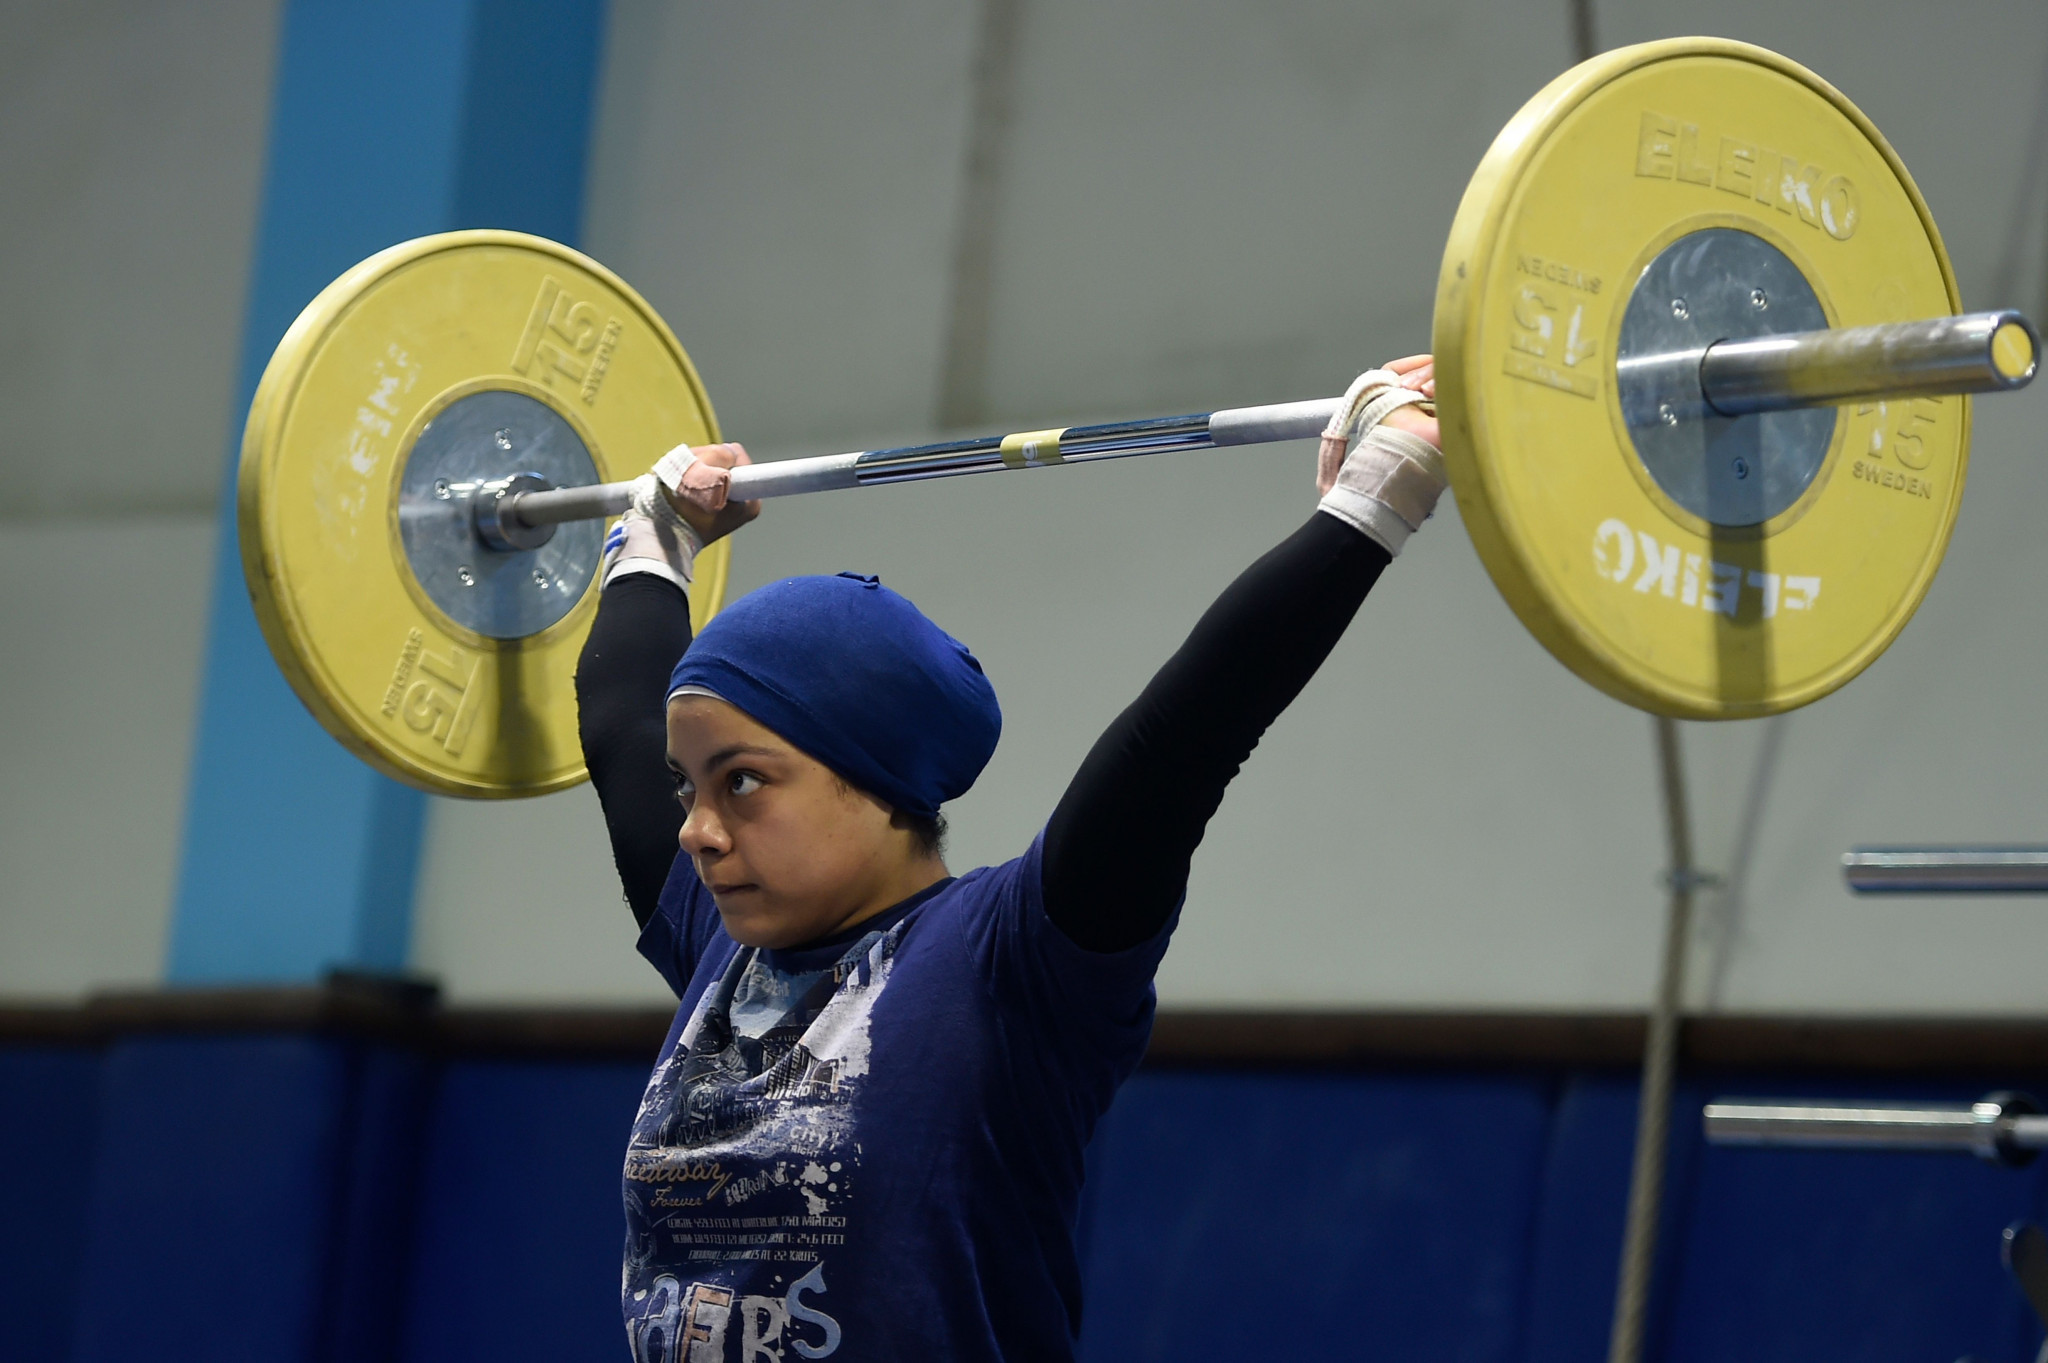 Egypt's Sara Ahmed claimed a clean sweep of the women's 69 kilograms gold medals at the 2018 IWF Junior World Championships in Tashkent ©Getty Images